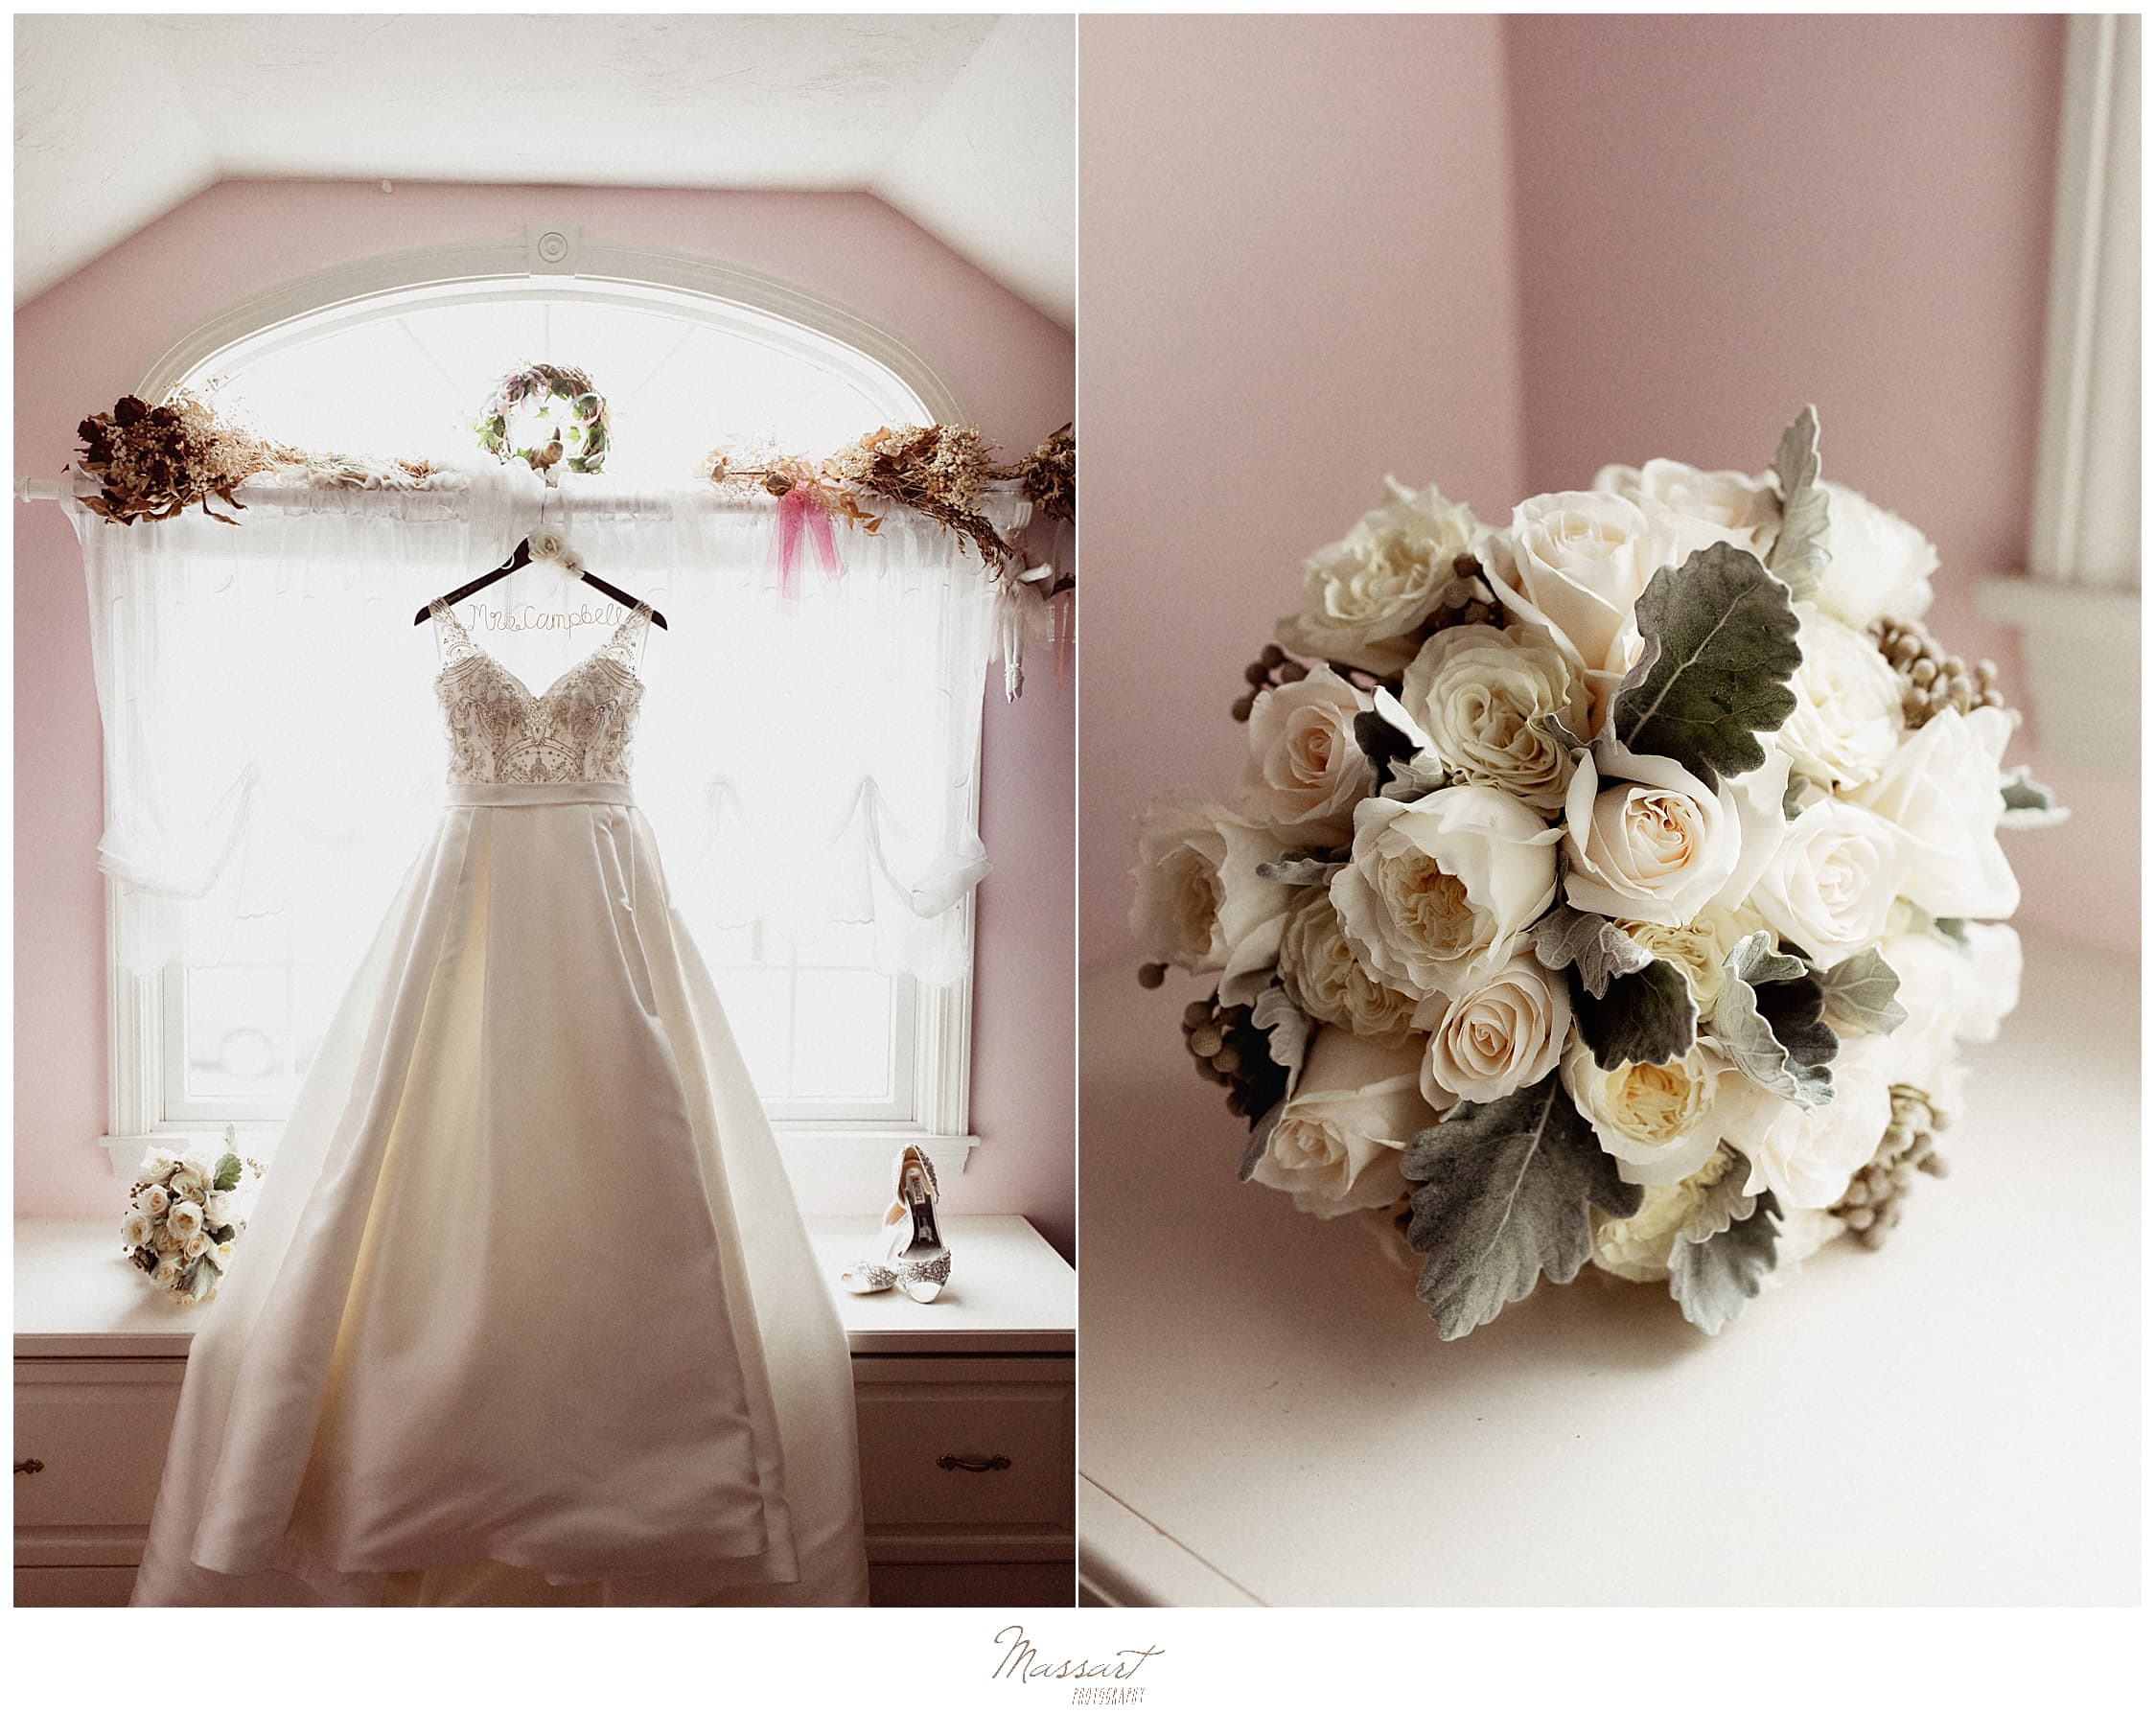 bride's strapless wedding gown with ivory wedding bouquet before MA wedding day photographed by Massart Photography